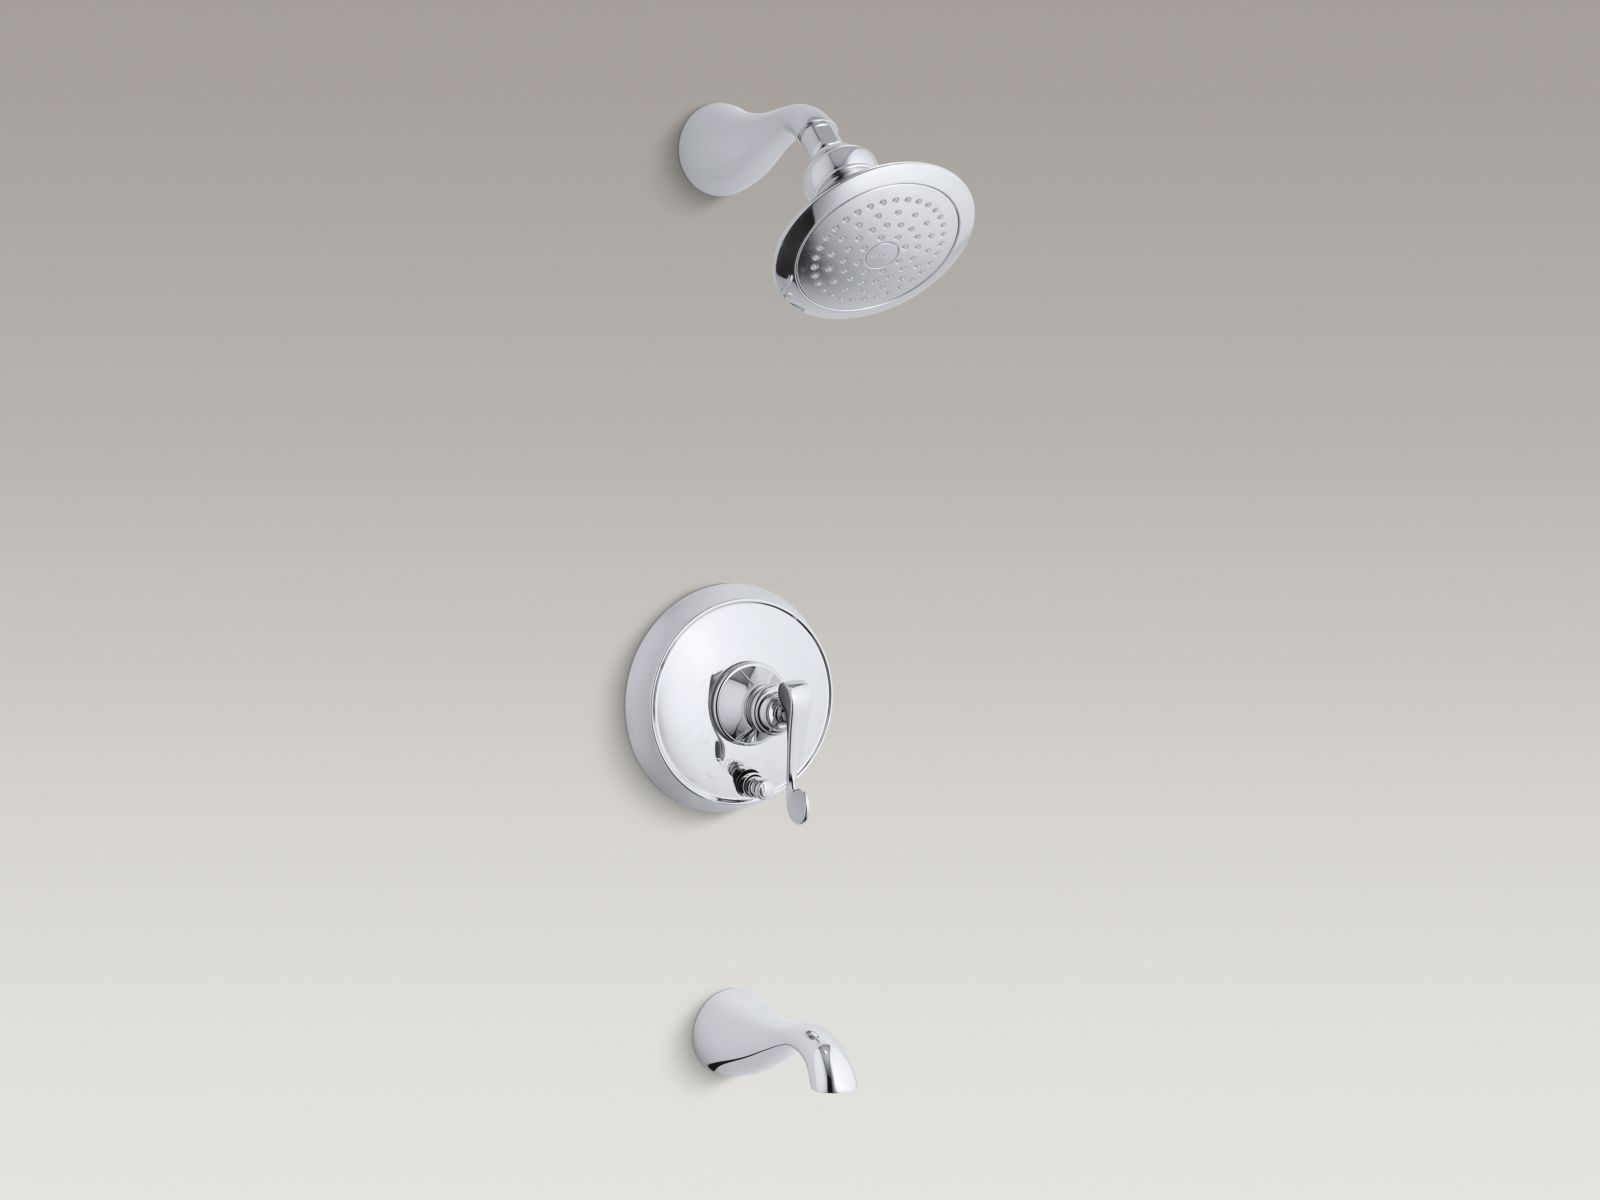 Ideas, buyplumbing category shower and tub faucet pertaining to proportions 1600 x 1200  .